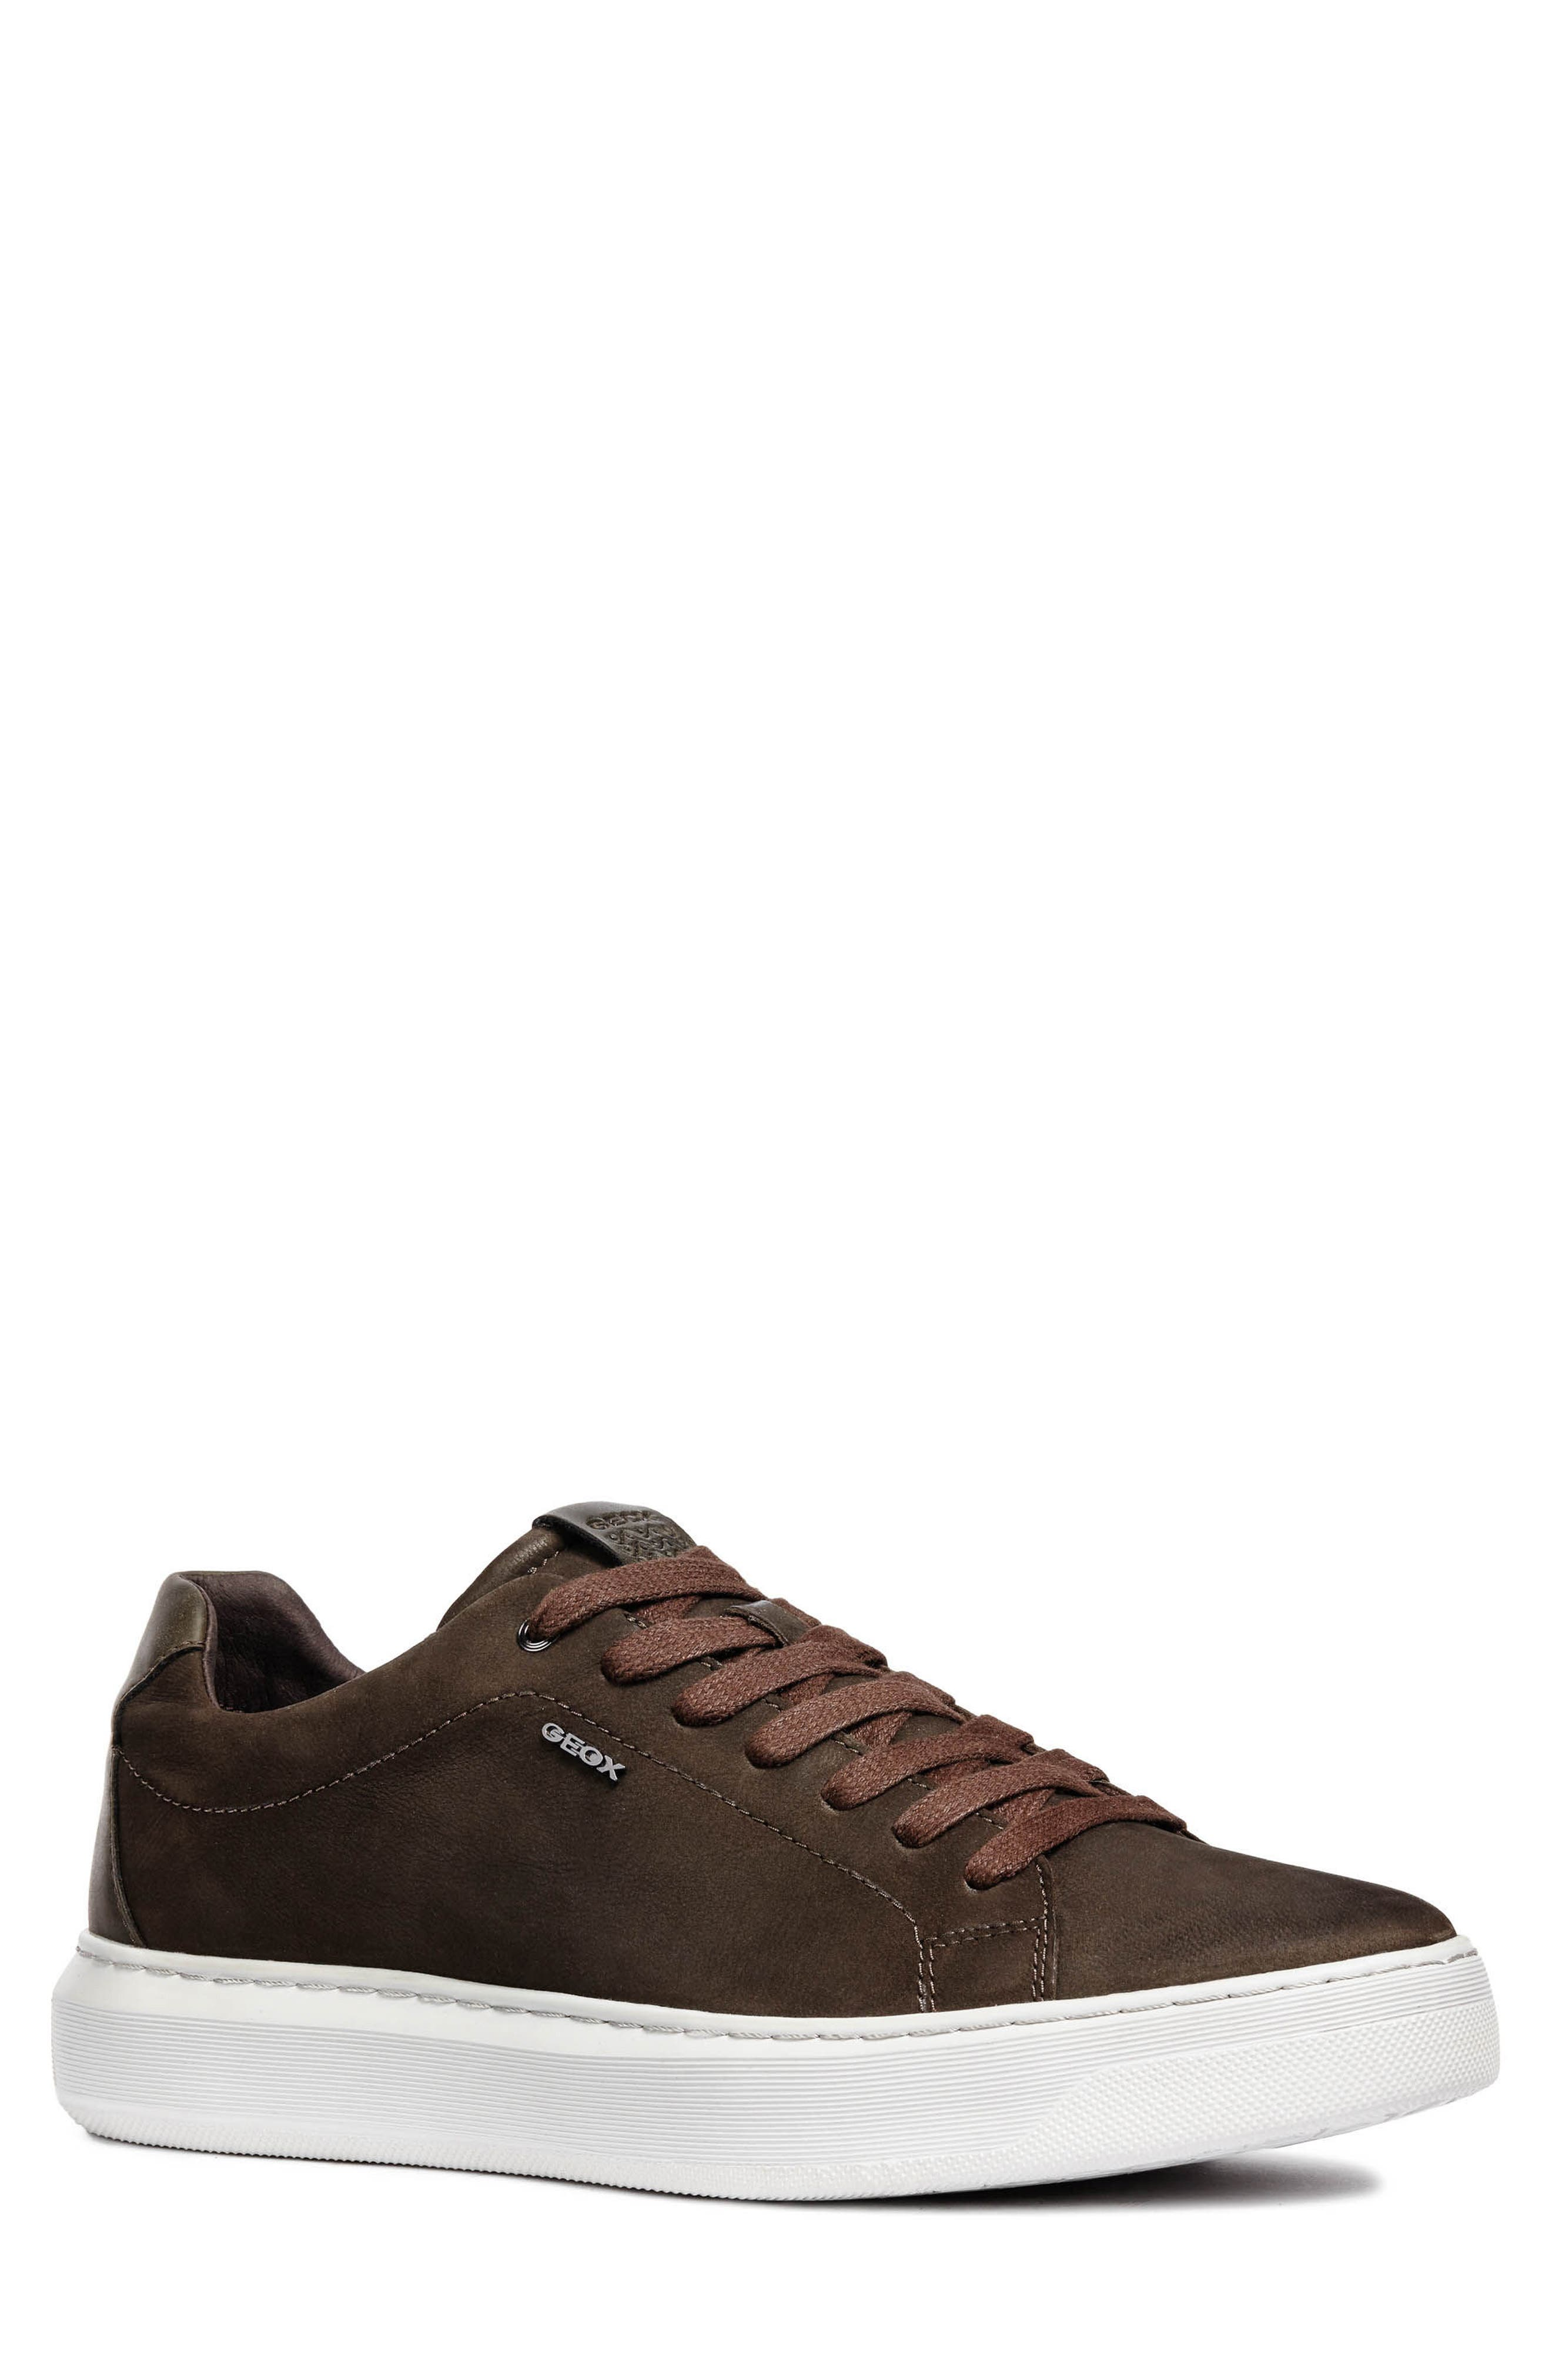 Deiven 5 Low Top Sneaker,                         Main,                         color, DARK COFFEE LEATHER